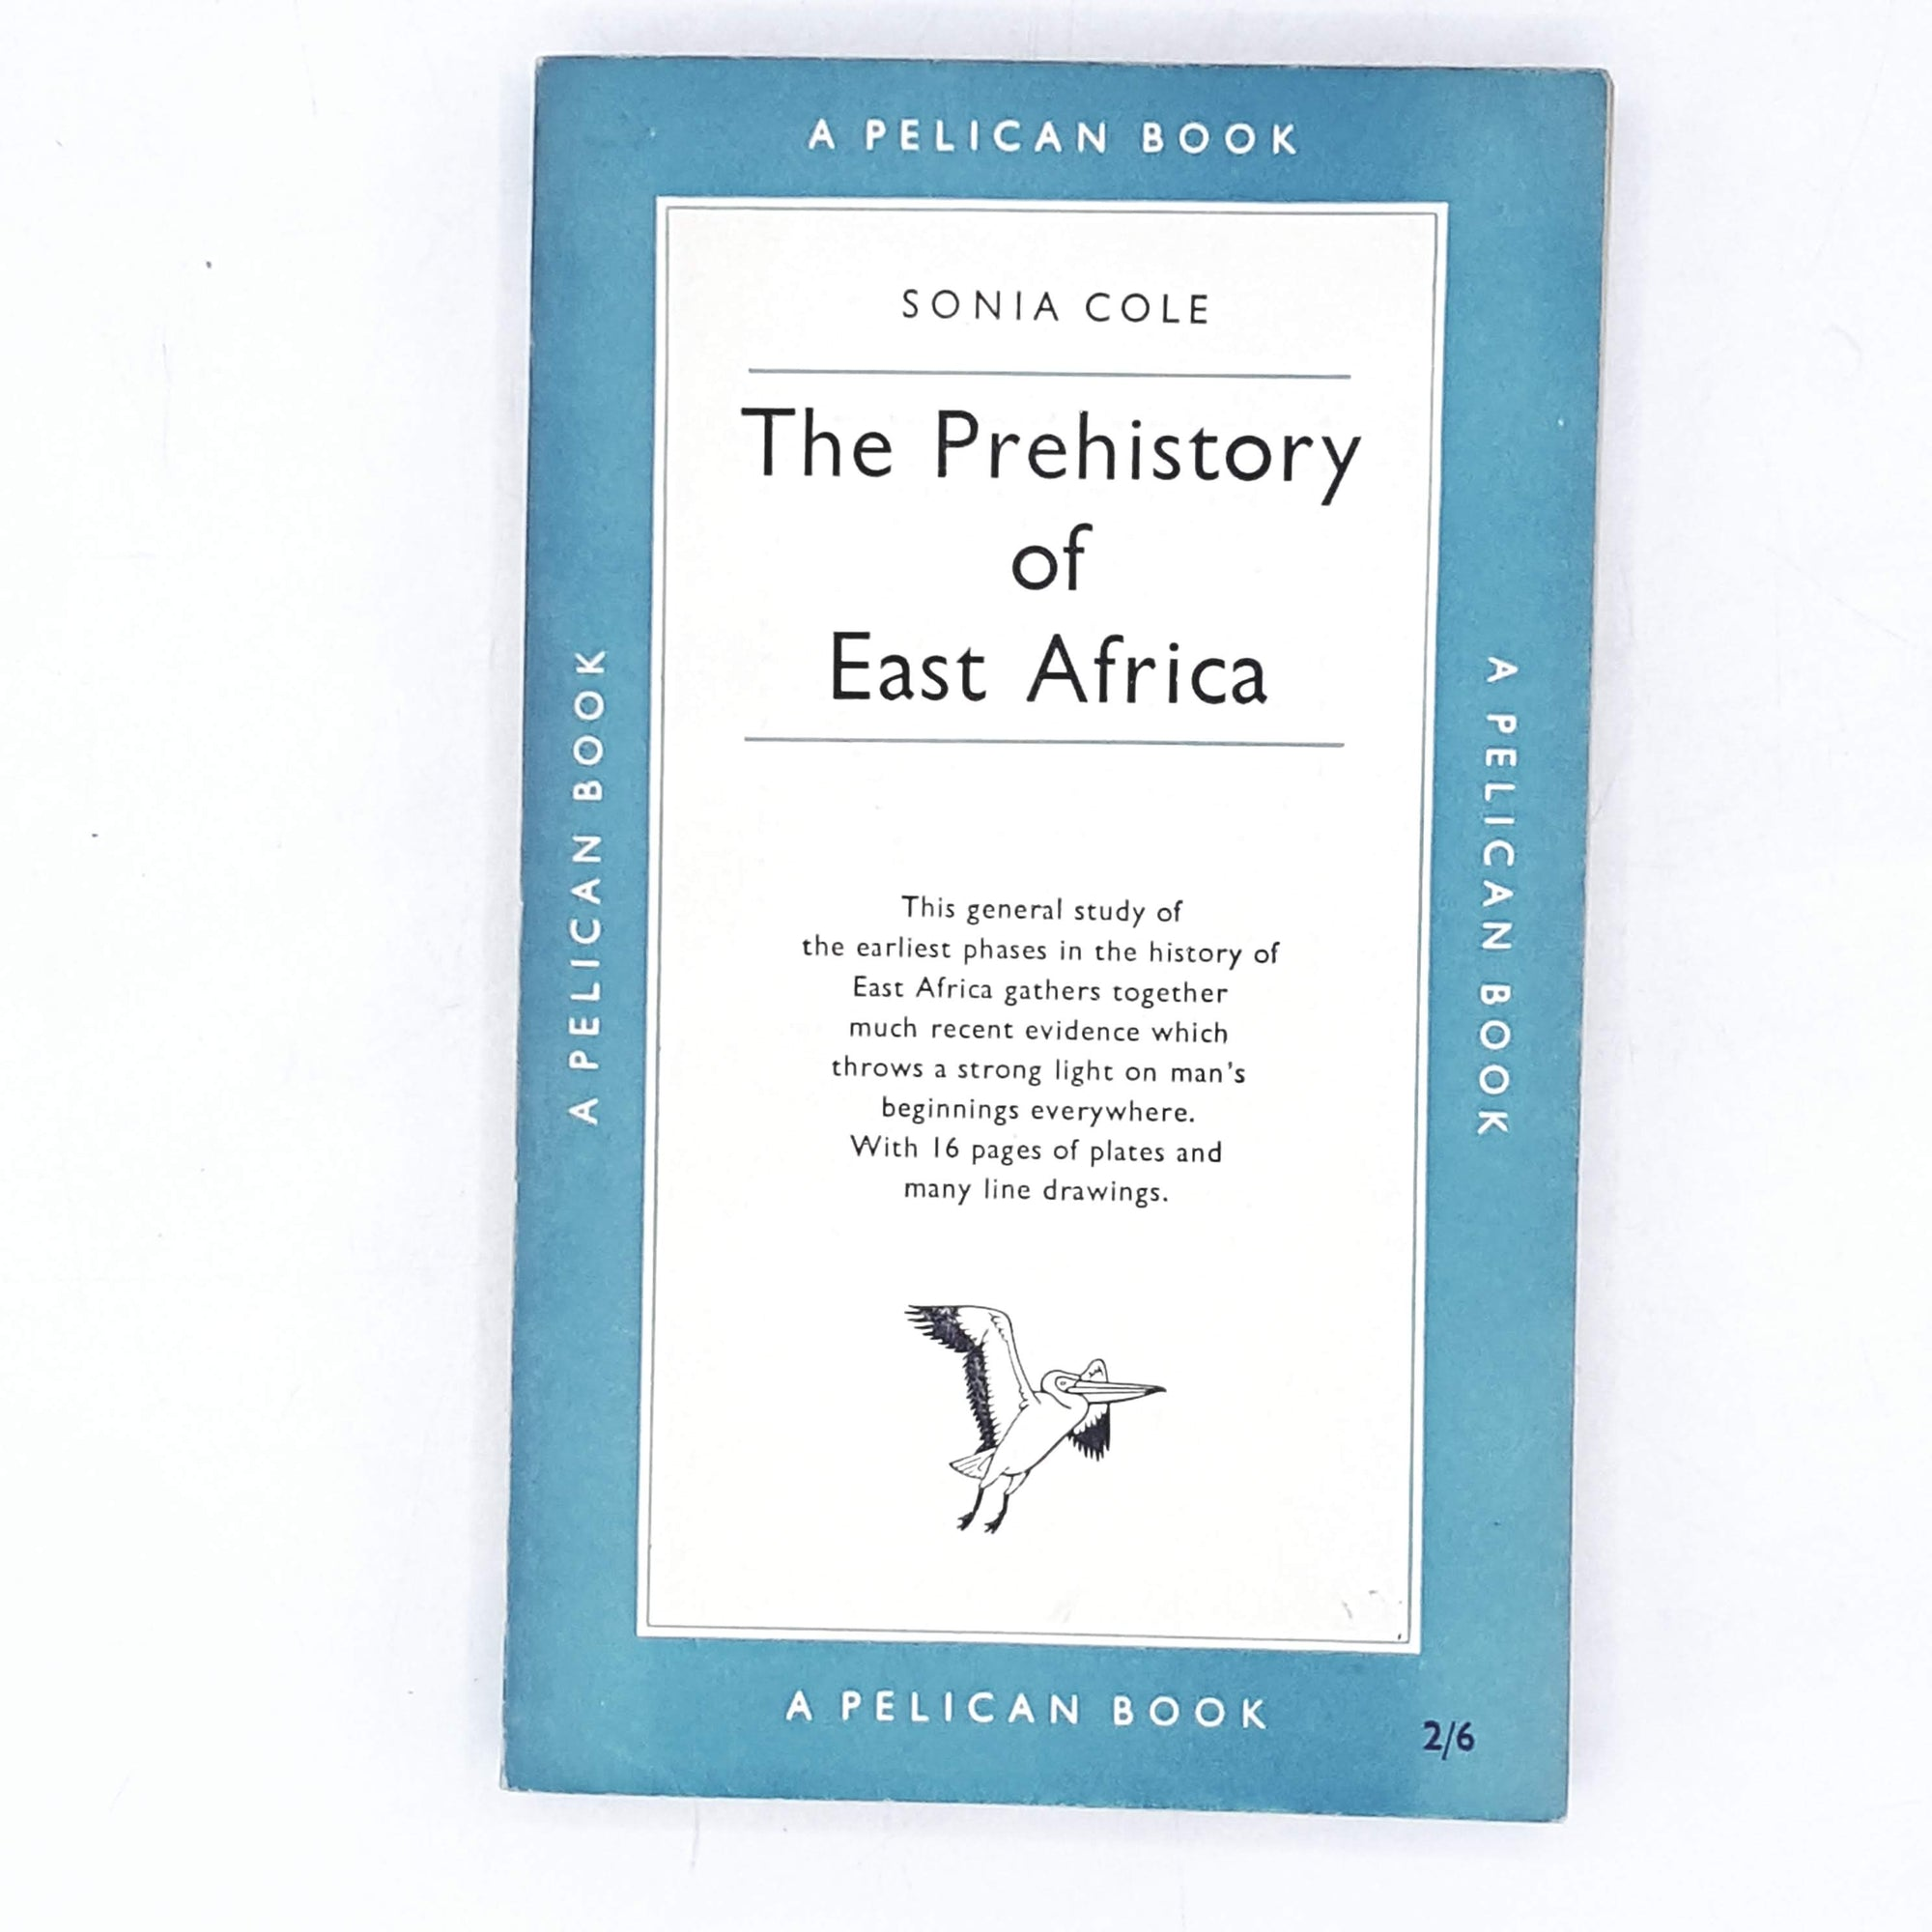 Vintage Pelican The Prehistory of East Africa by Sonia Cole 1954